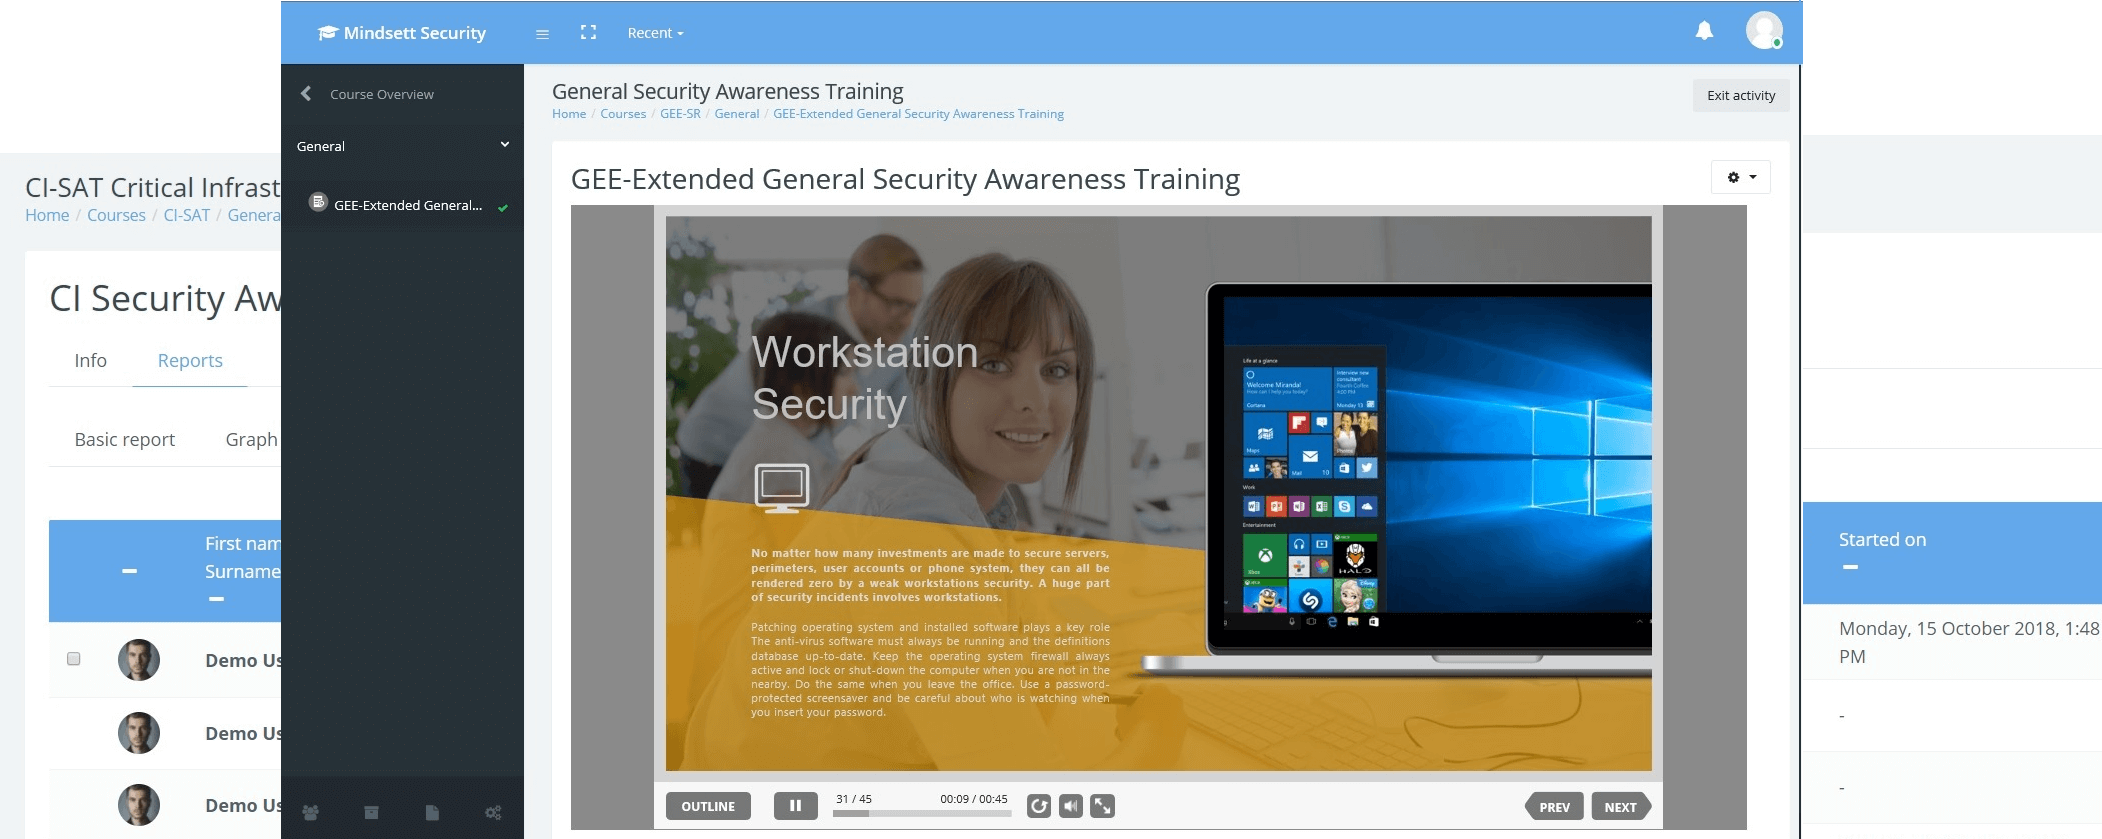 Mindsett Security - Security Through Training